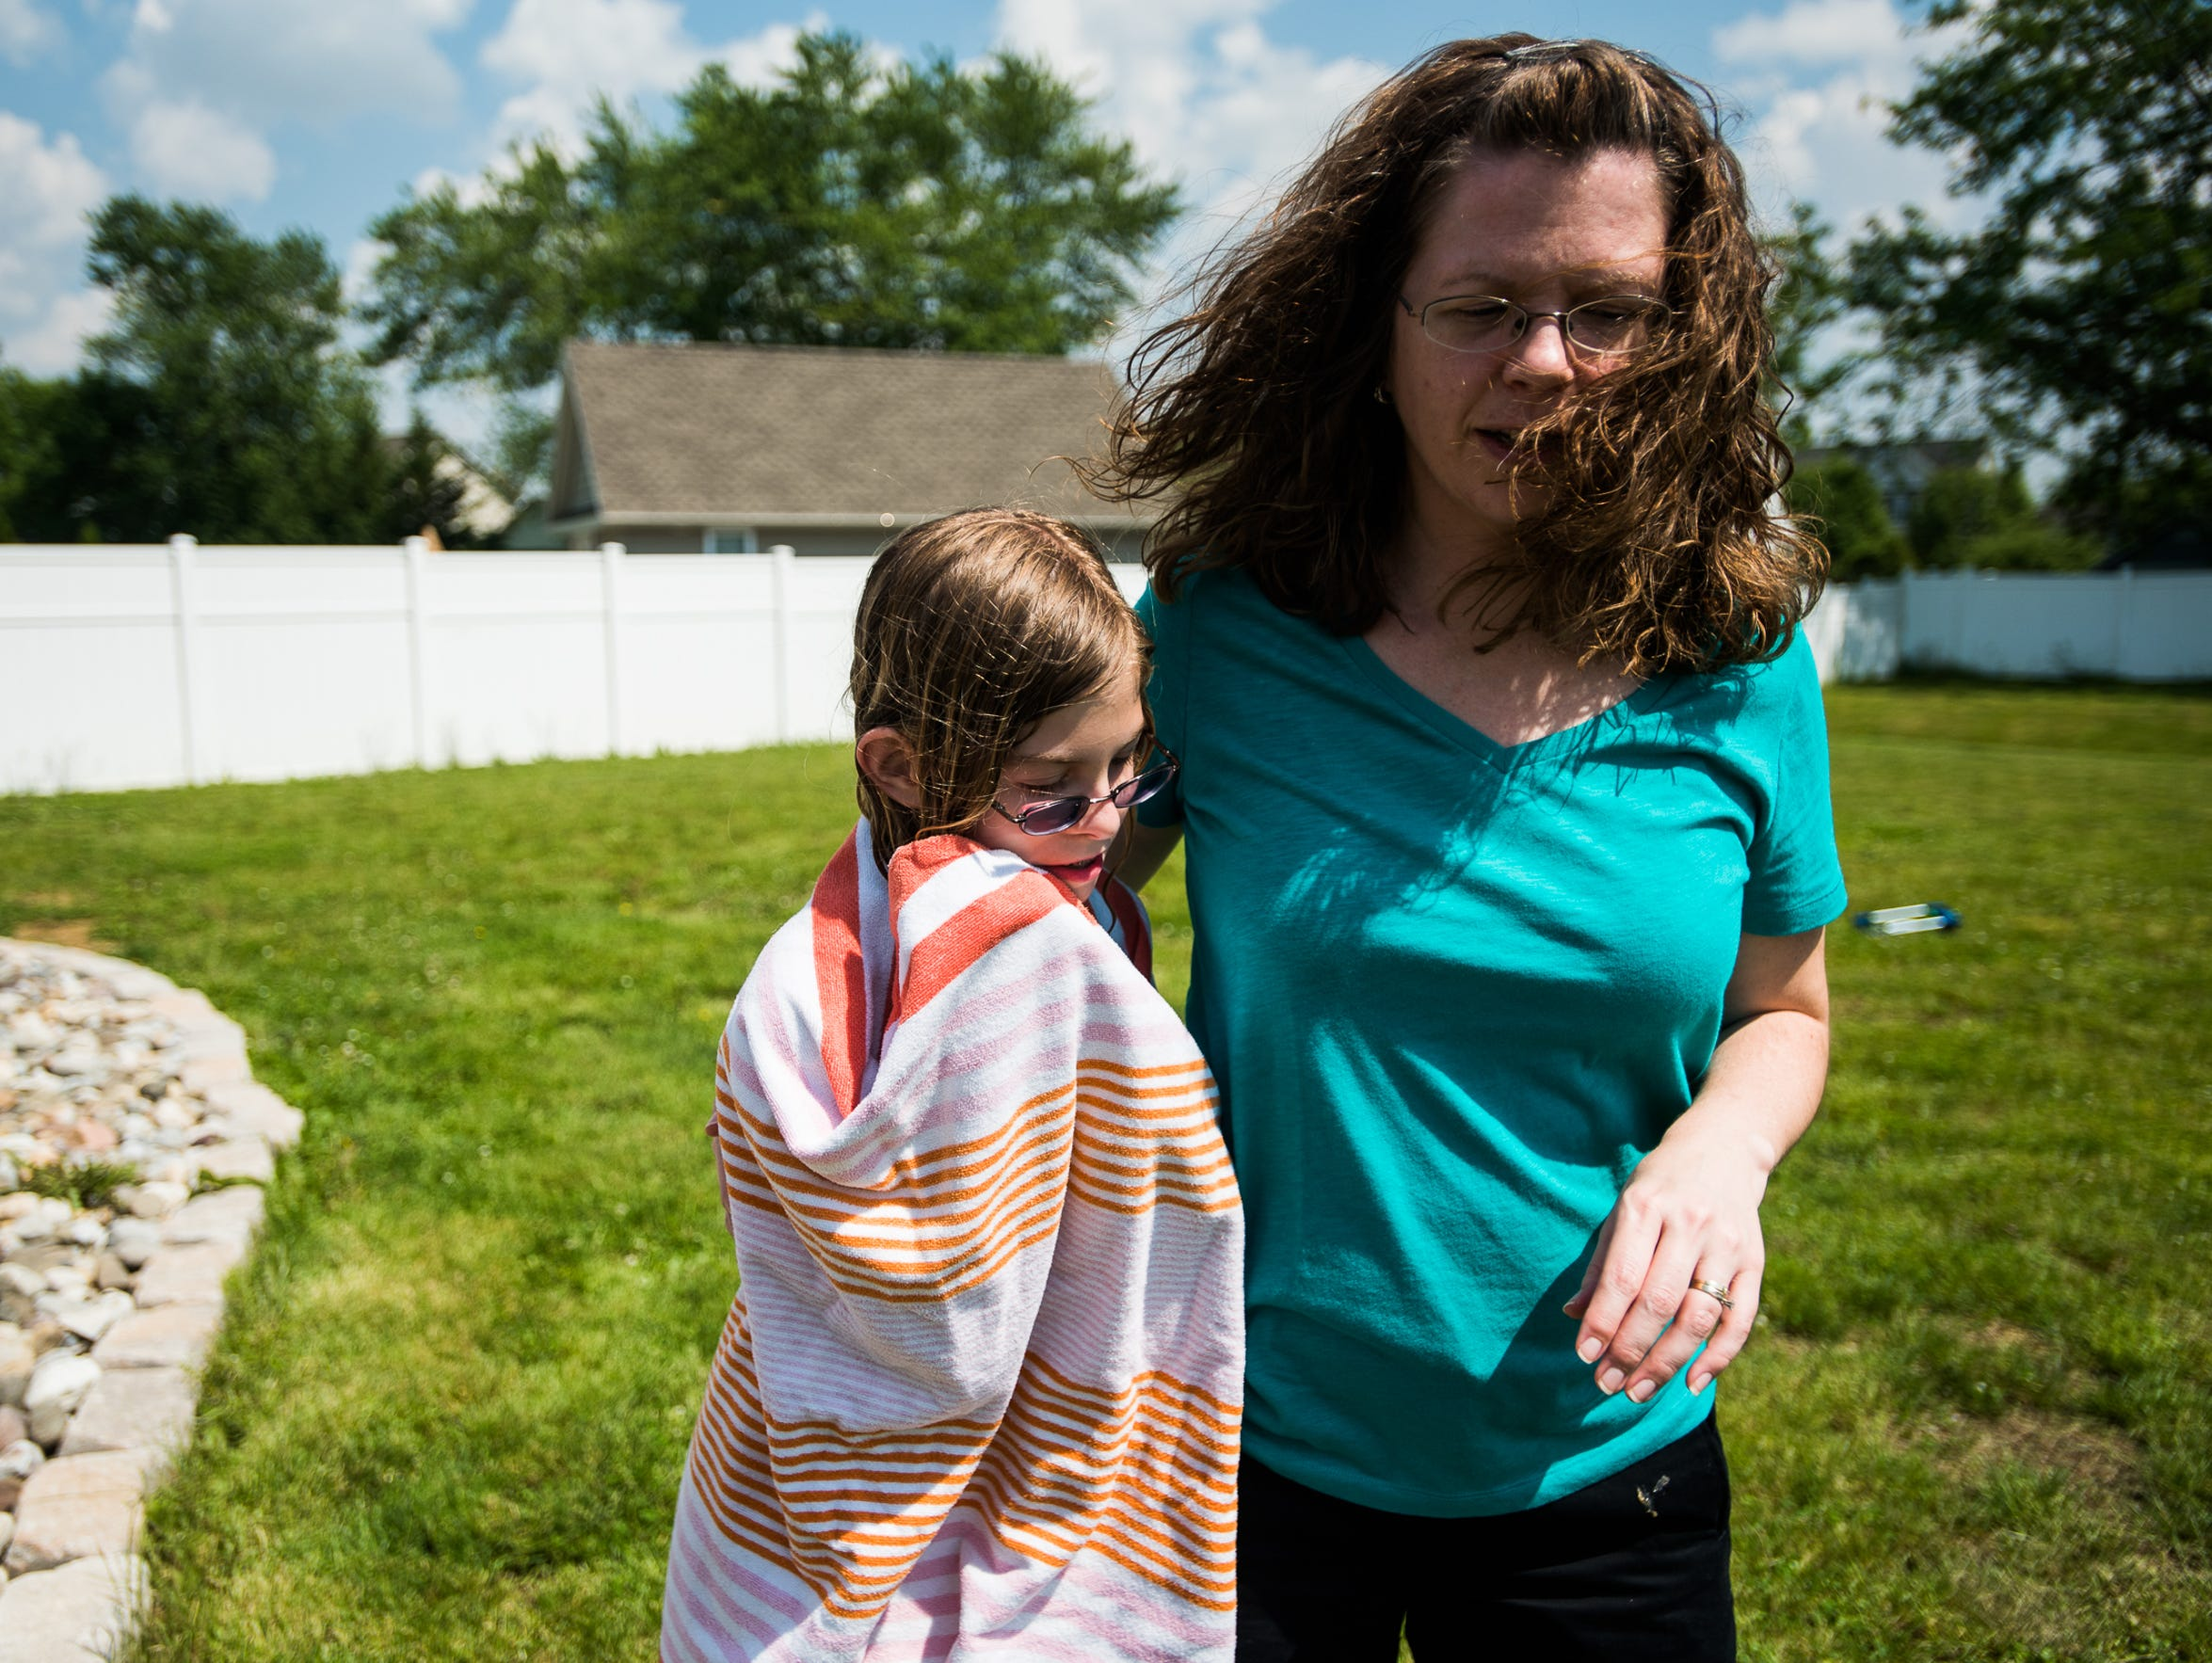 Emma Haines, 11, goes to her mother, Jennifer, after